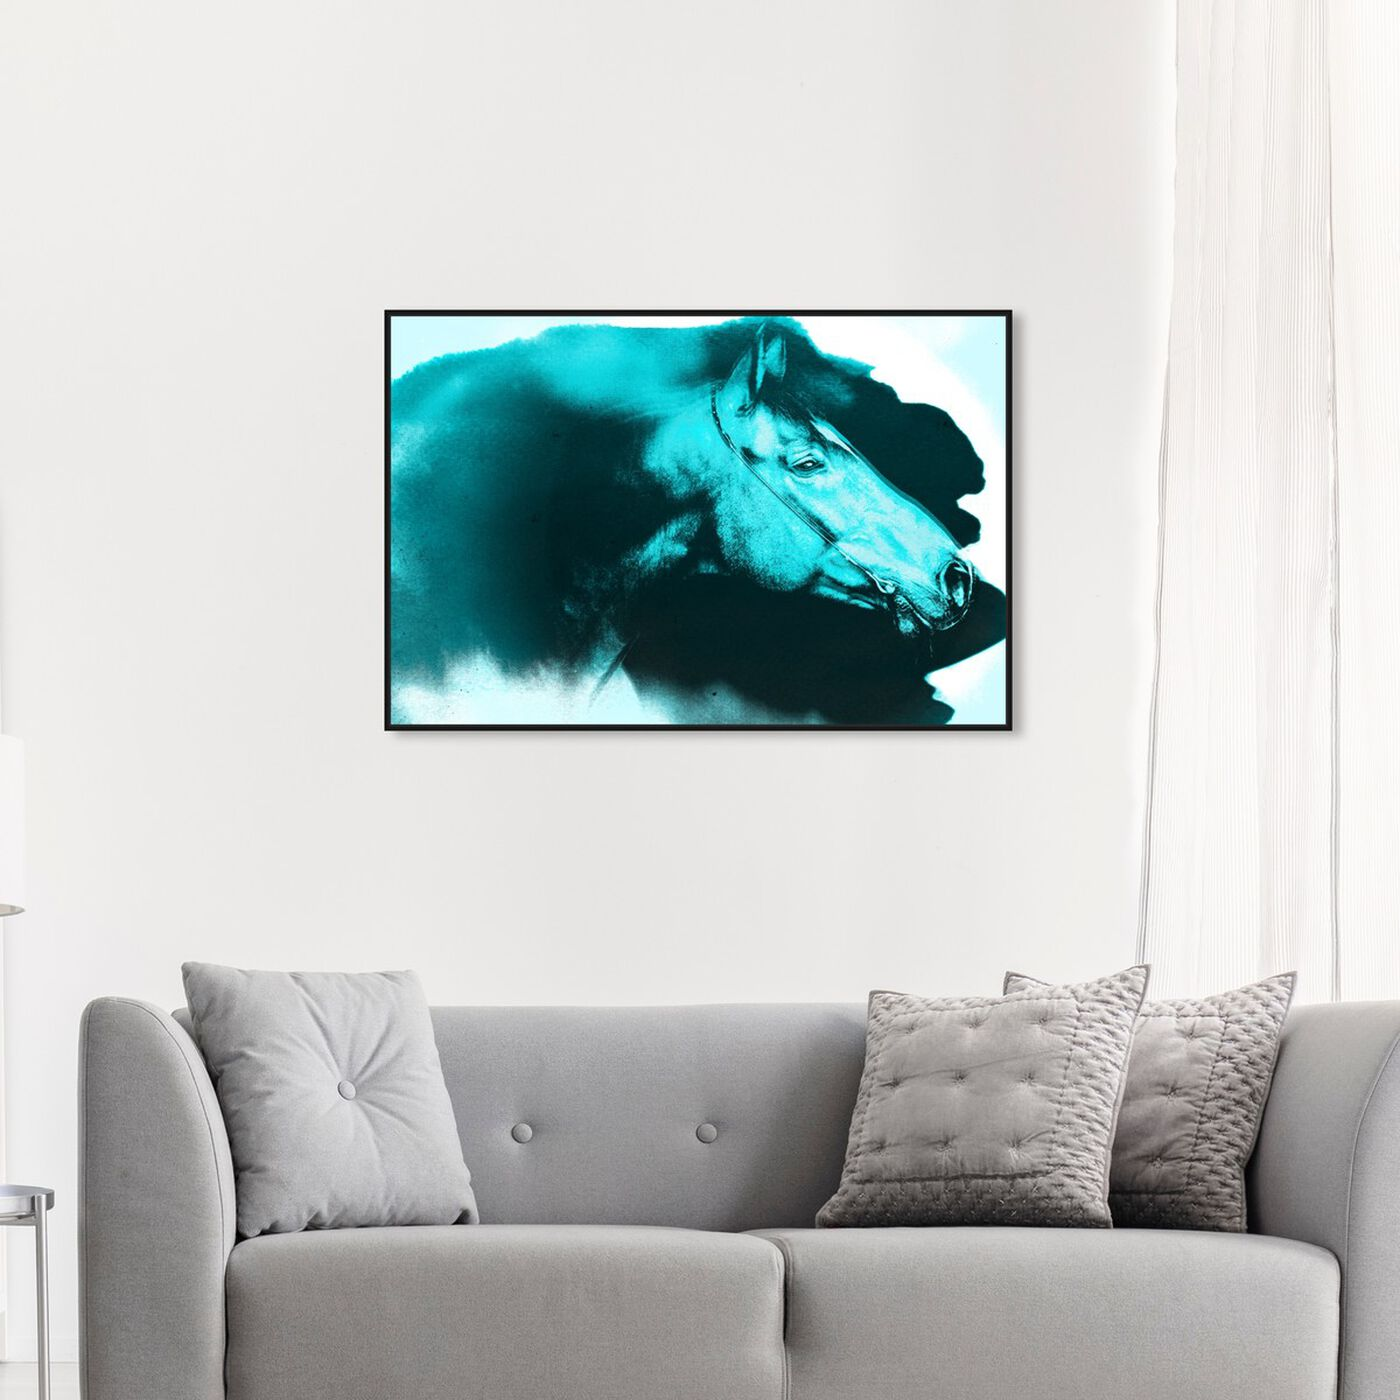 Hanging view of Carson Kressley - Absorbed Neon Blue featuring animals and farm animals art.